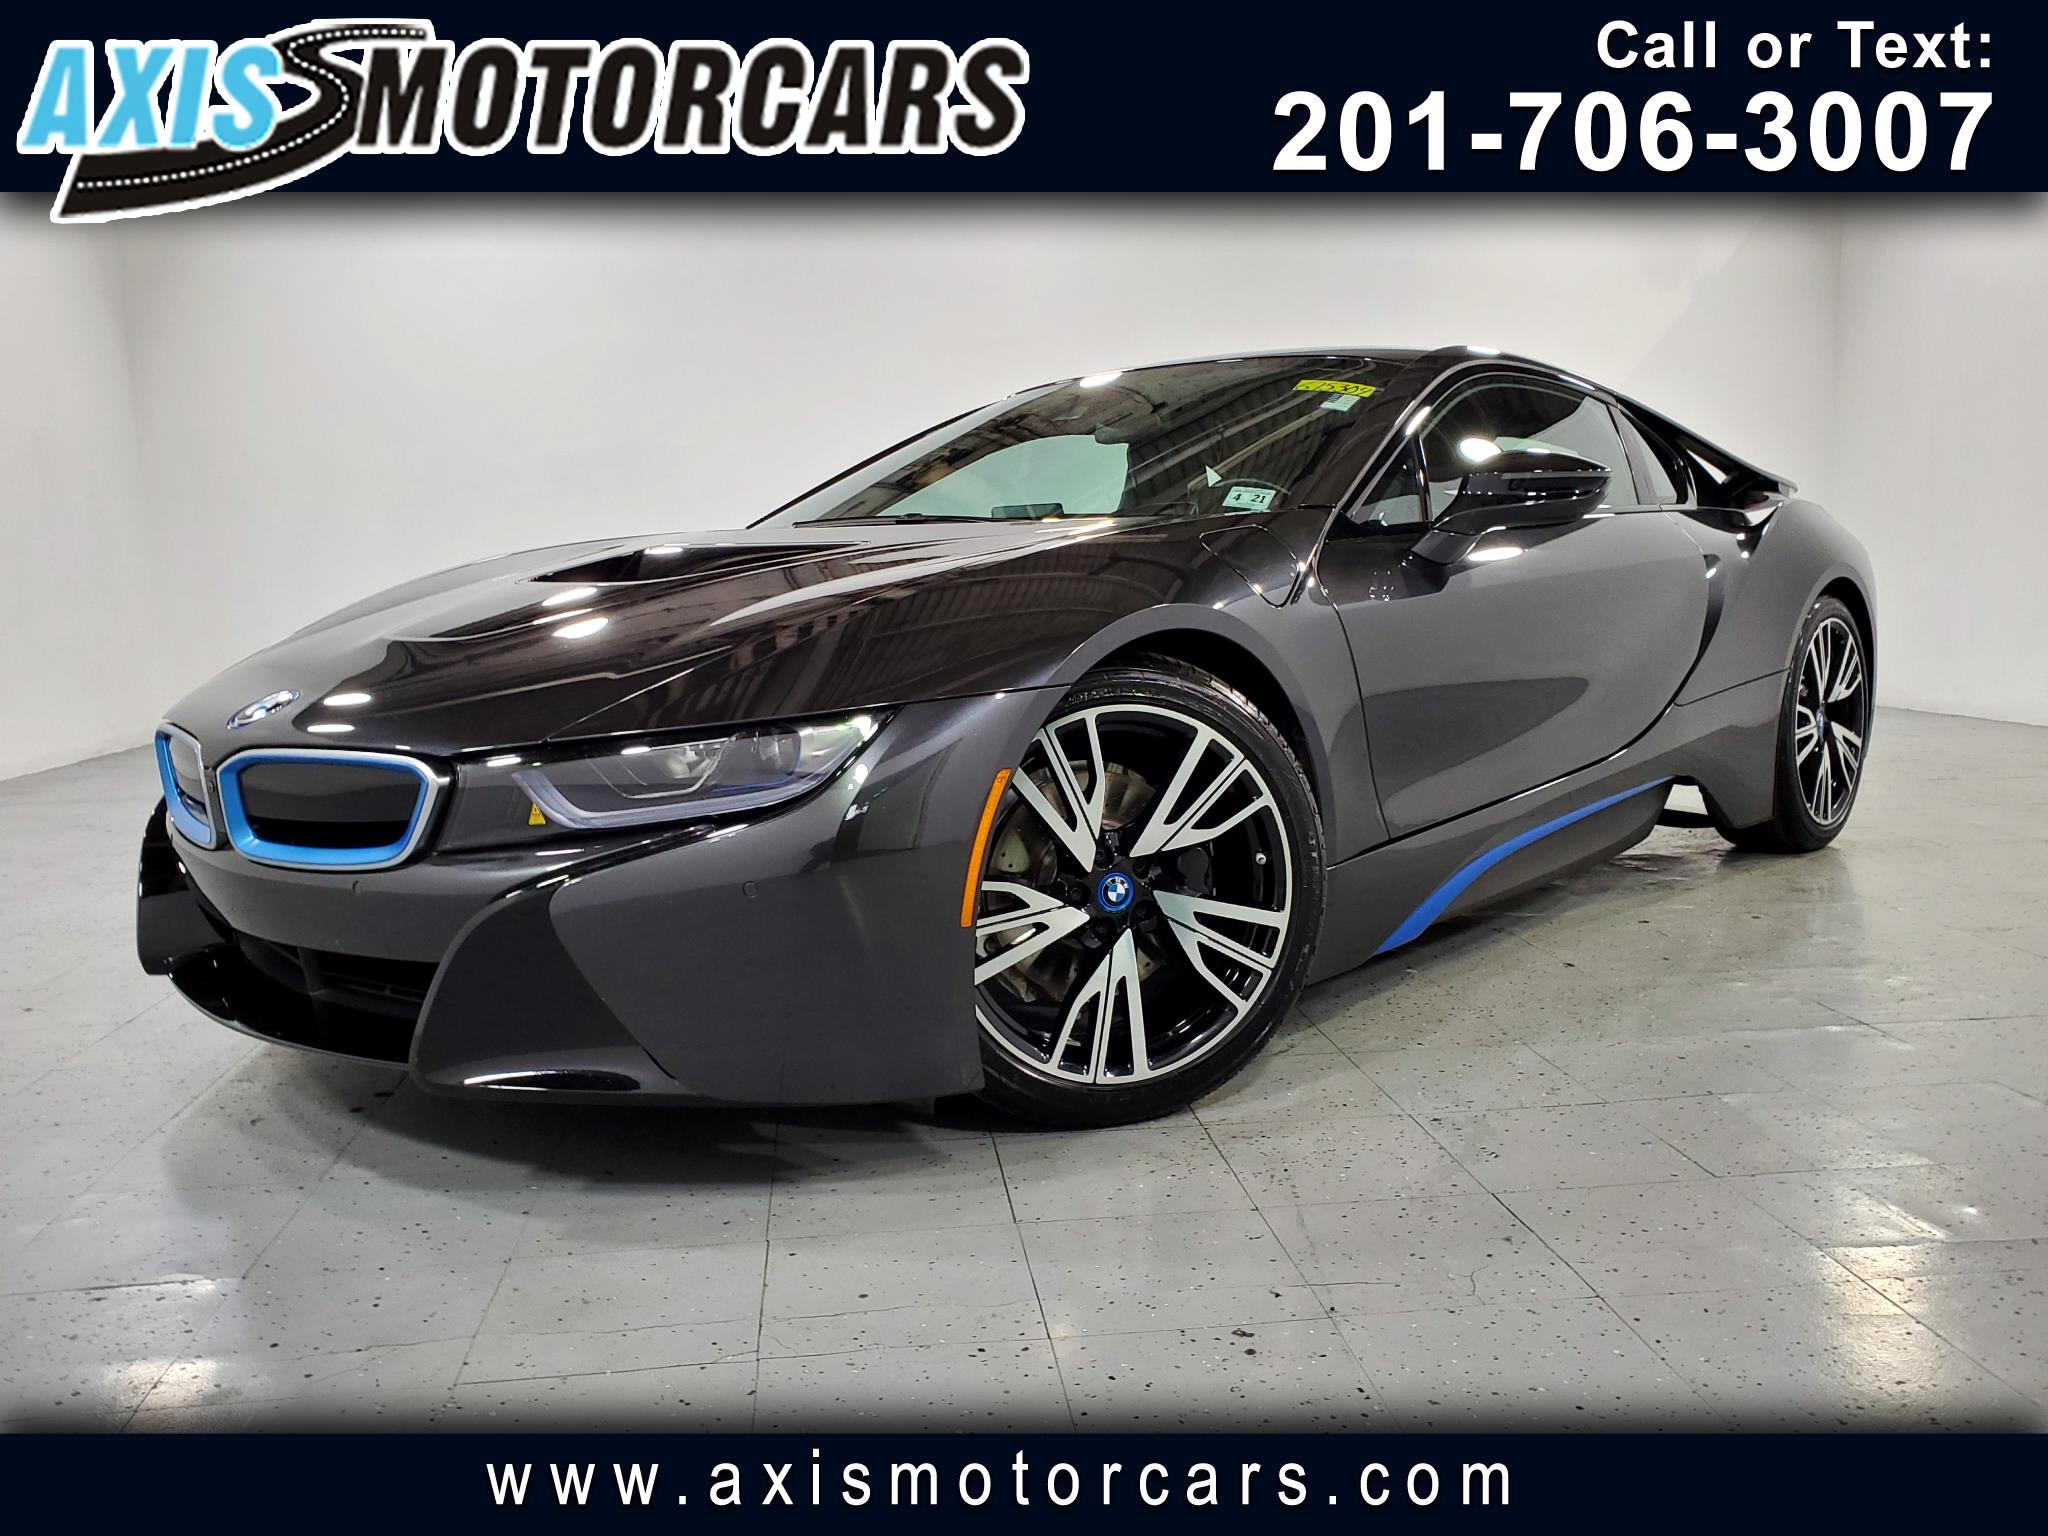 Axis Auto Group Inventory Of Used Cars For Sale